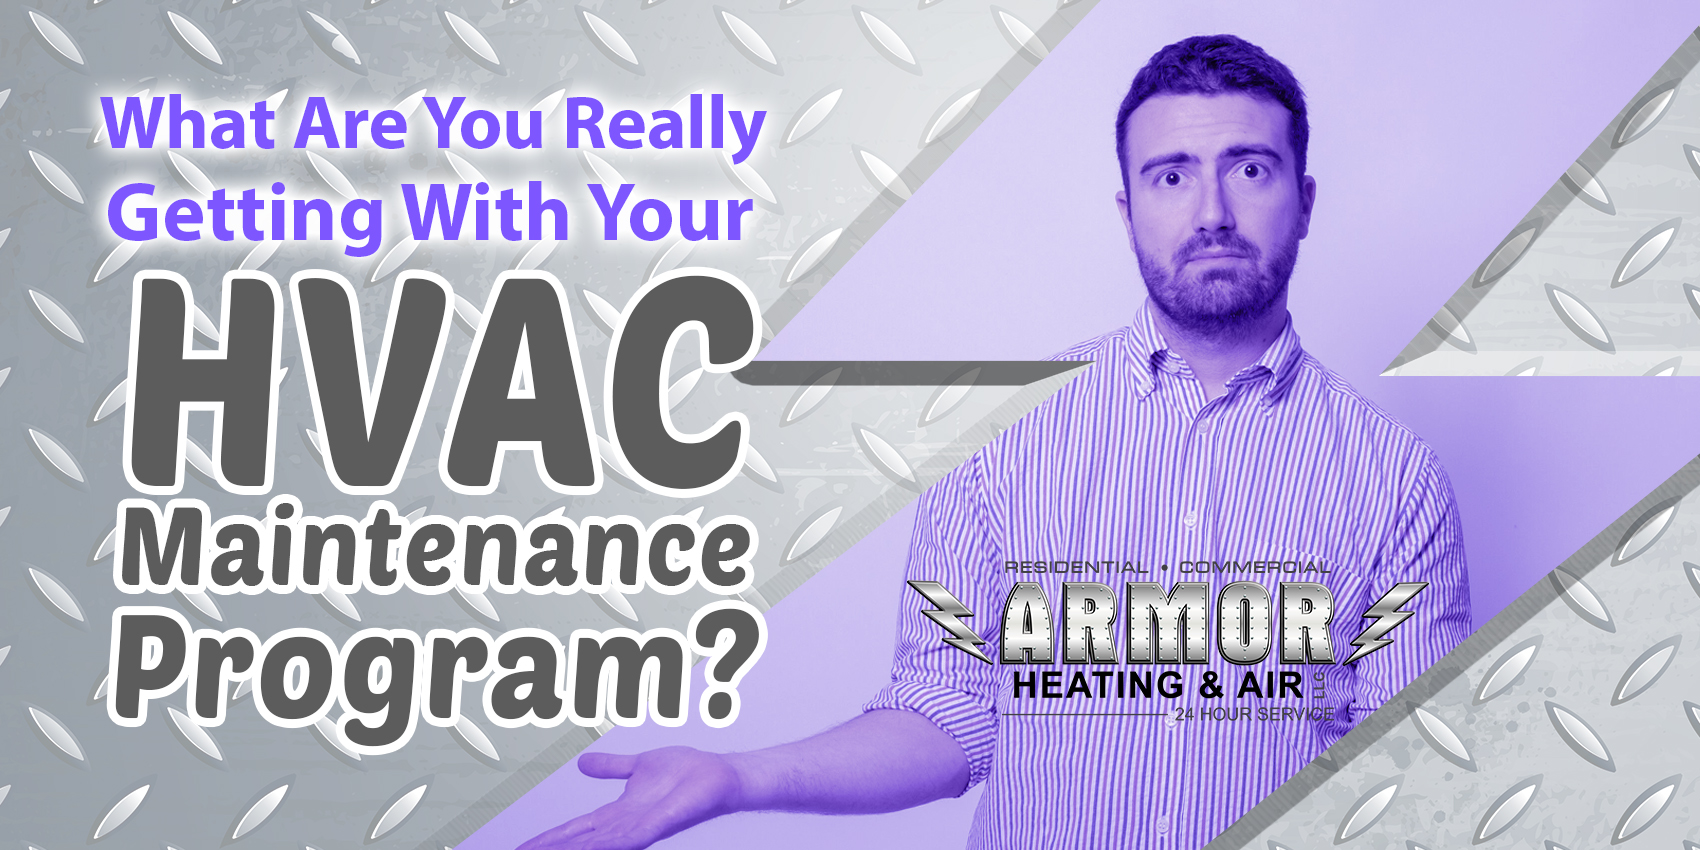 What Are You Really Getting With Your HVAC Maintenance Program?